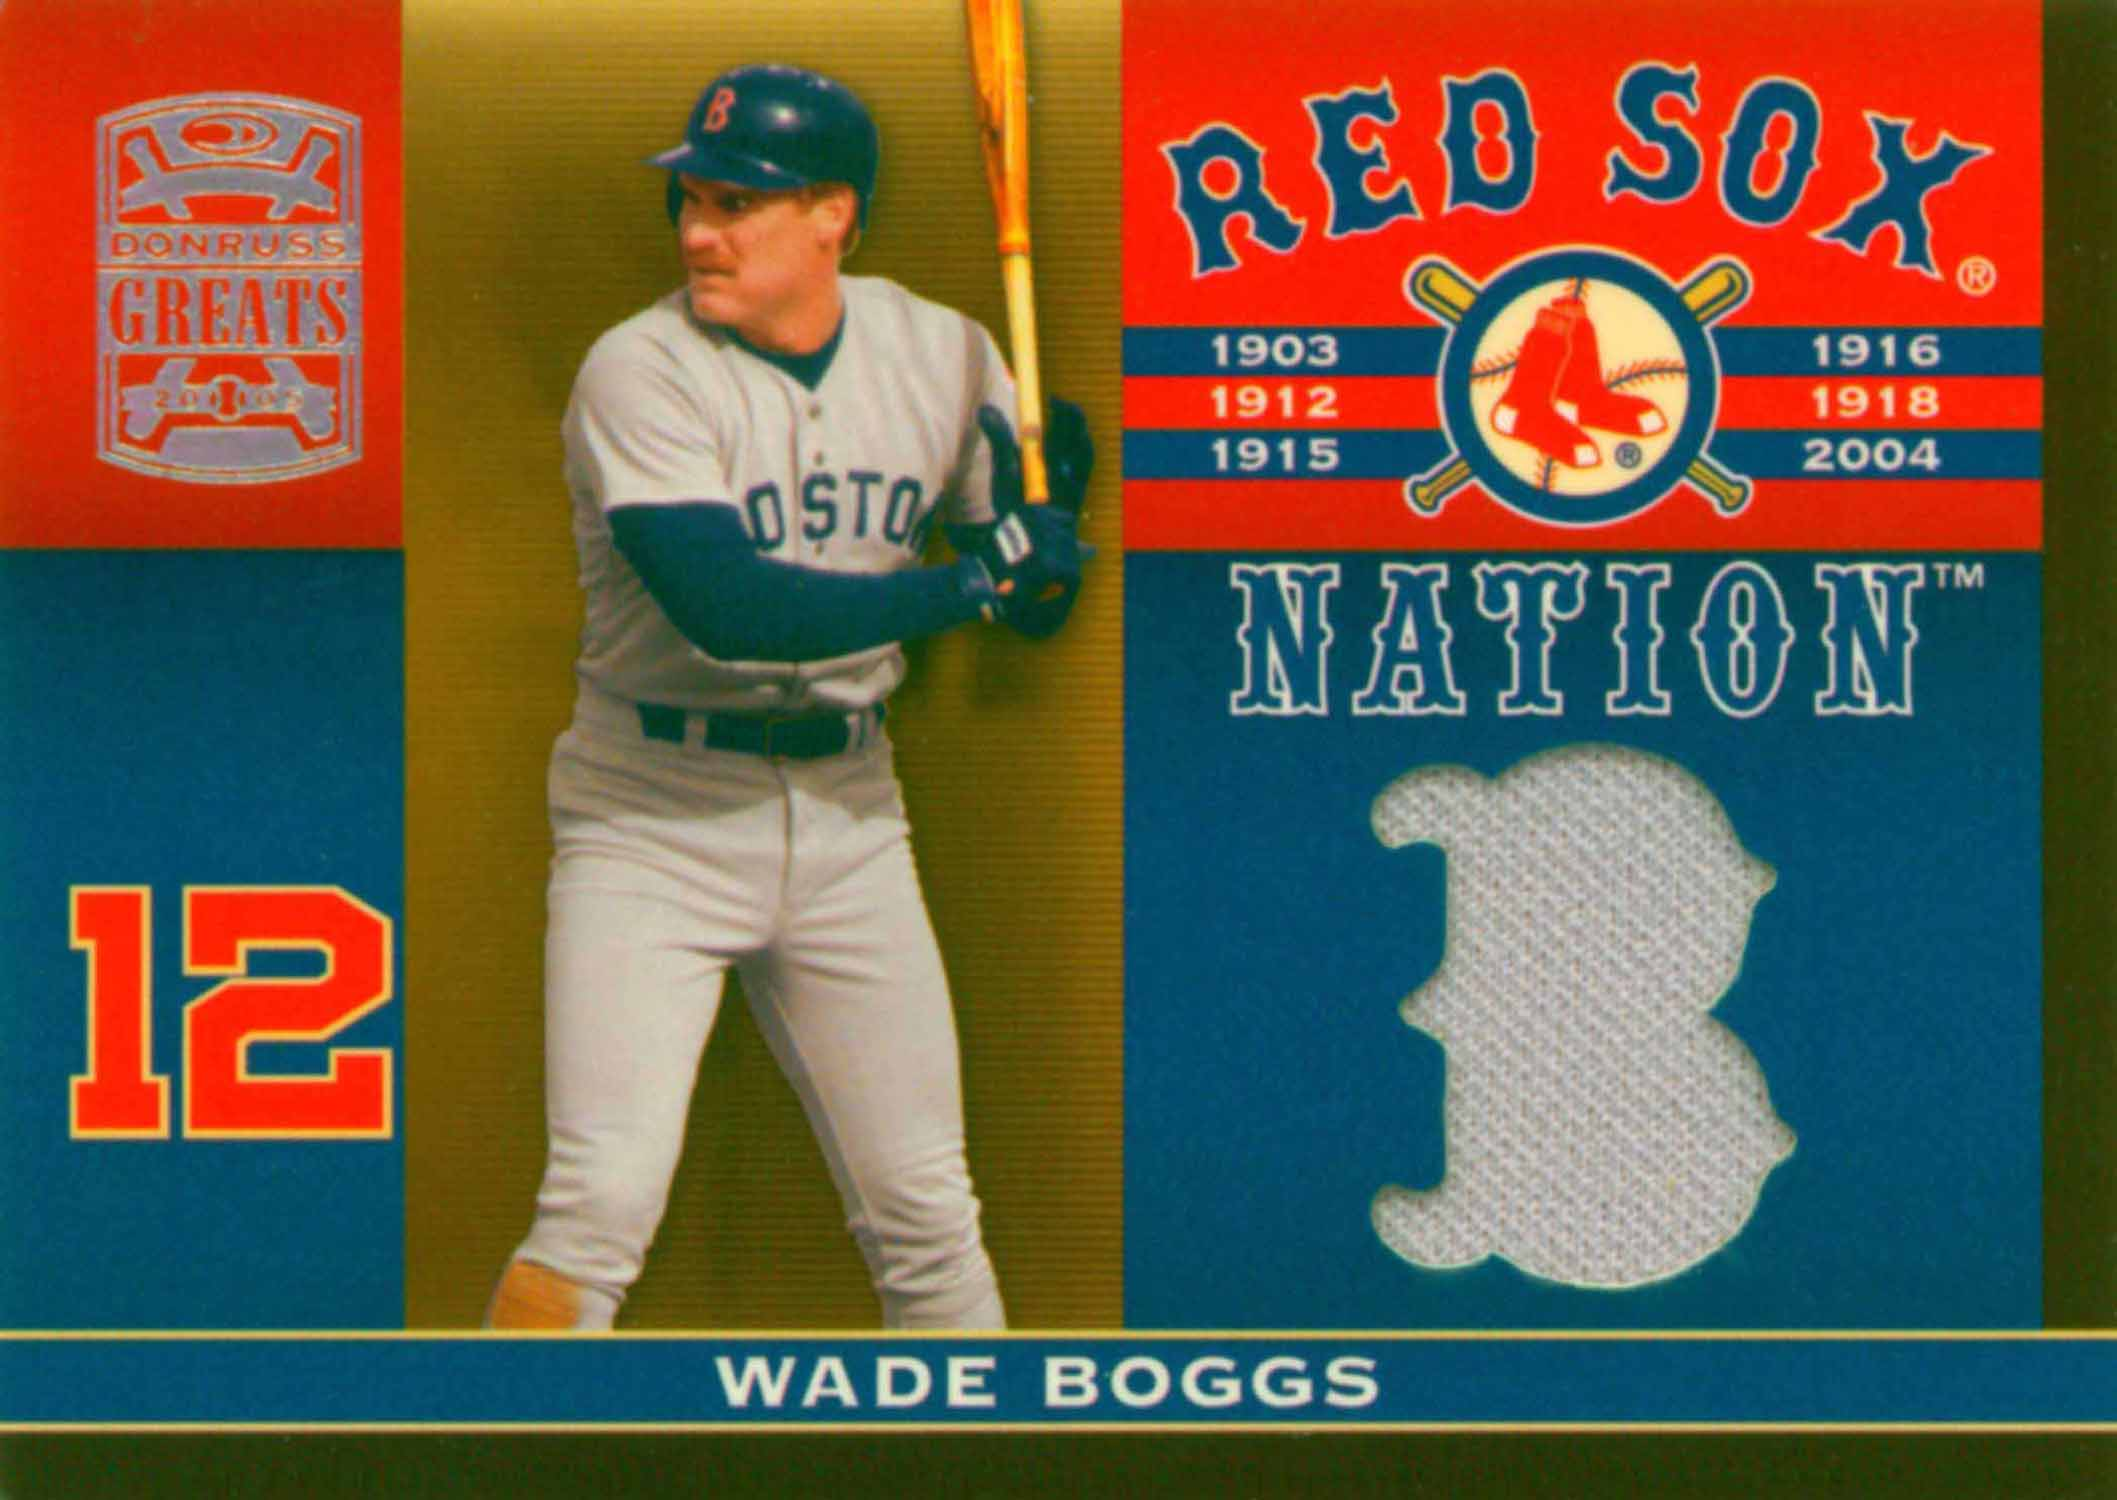 2005 Donruss Greats Sox Nation Material Jersey